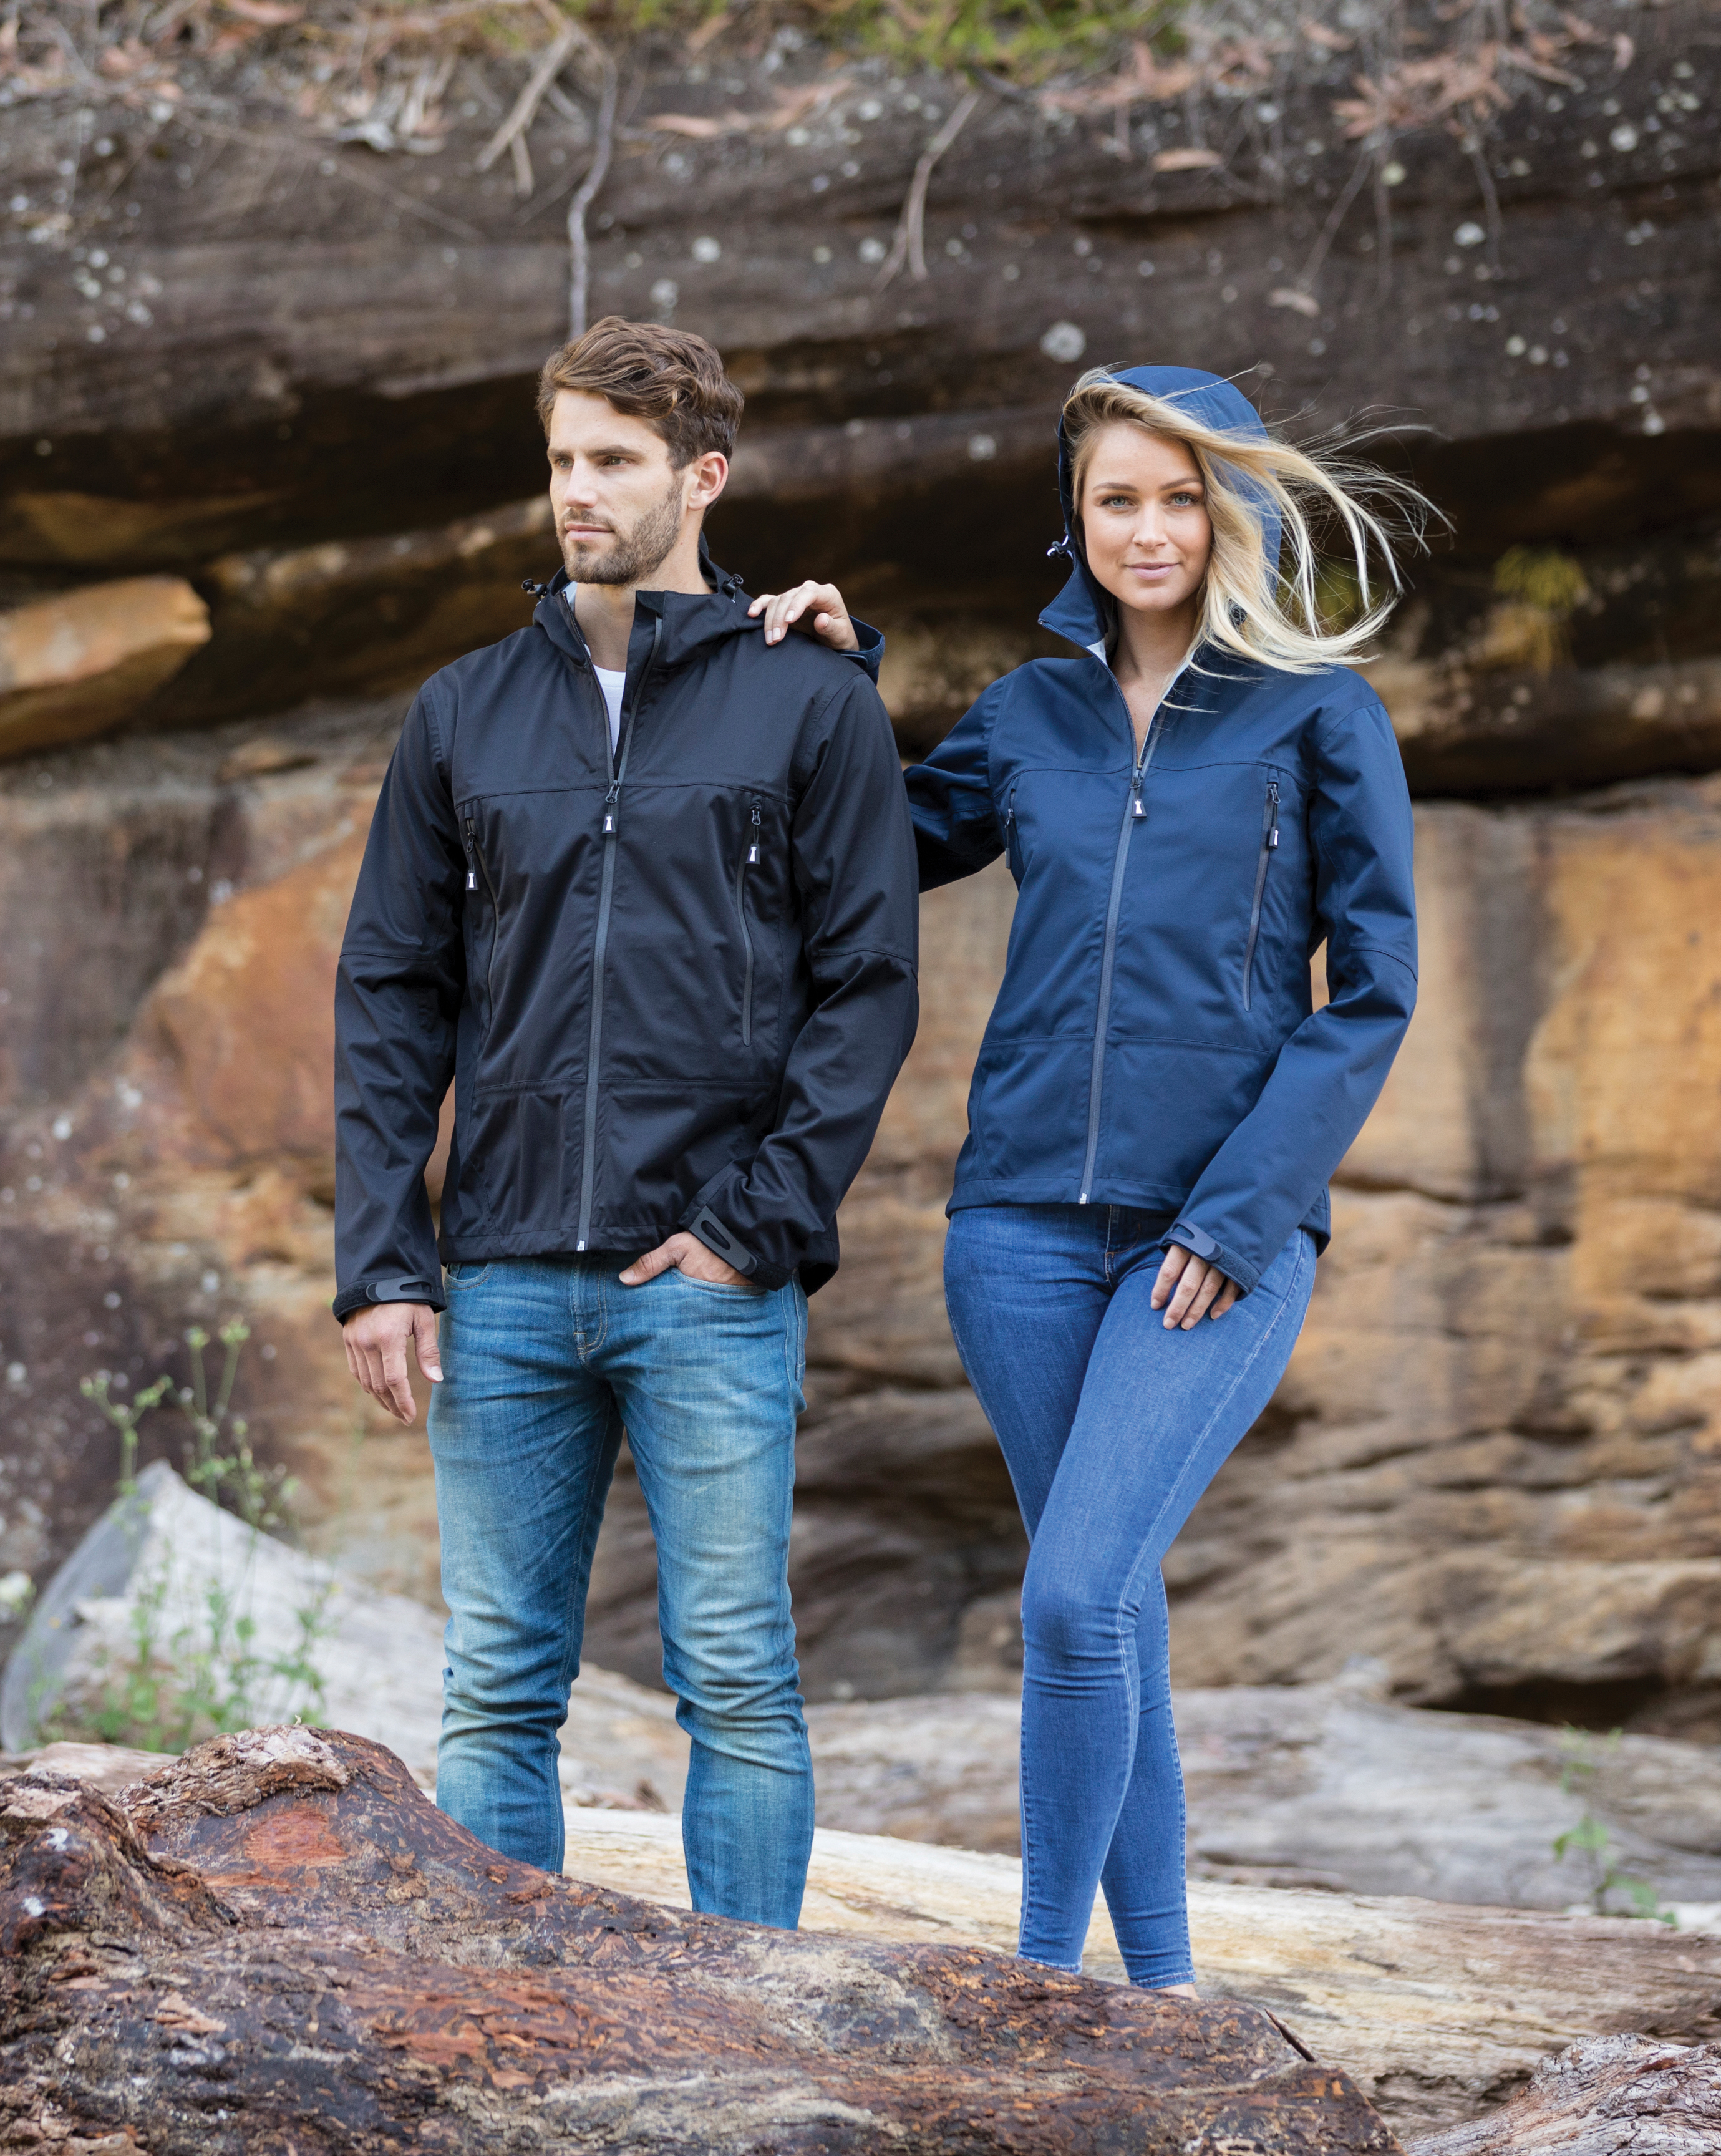 Beacon Unisex Wind and Waterproof 3-Layers Shell Jacket in Black and Navy